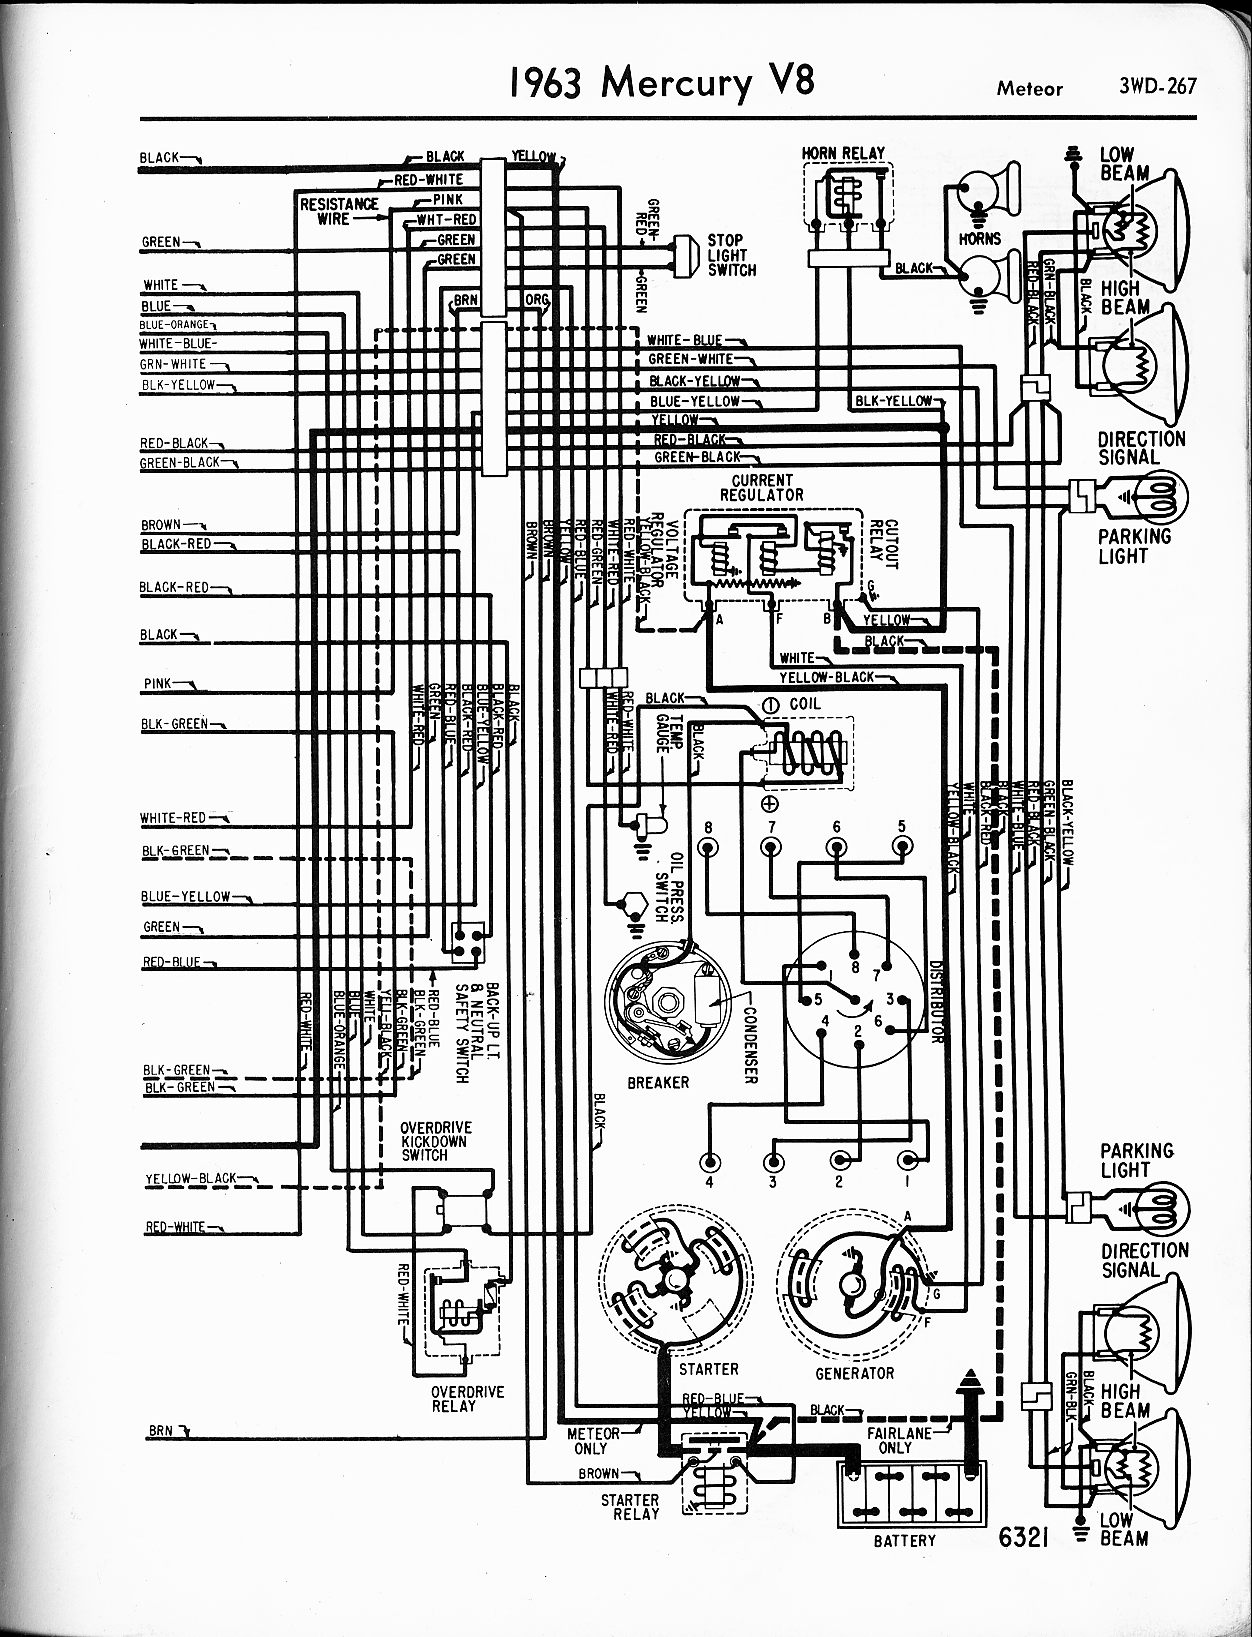 2drud 98 Volkswagen Jetta Gls Ac Cruise Wiring Diagram likewise 1950 Gm Headlight Switch Wiring Diagram as well Mercuryindex likewise Chevrolet Truck Turn Signal Flasher Location furthermore 1963 Mg Midget Wiring Diagram. on 1957 pontiac wiring diagram